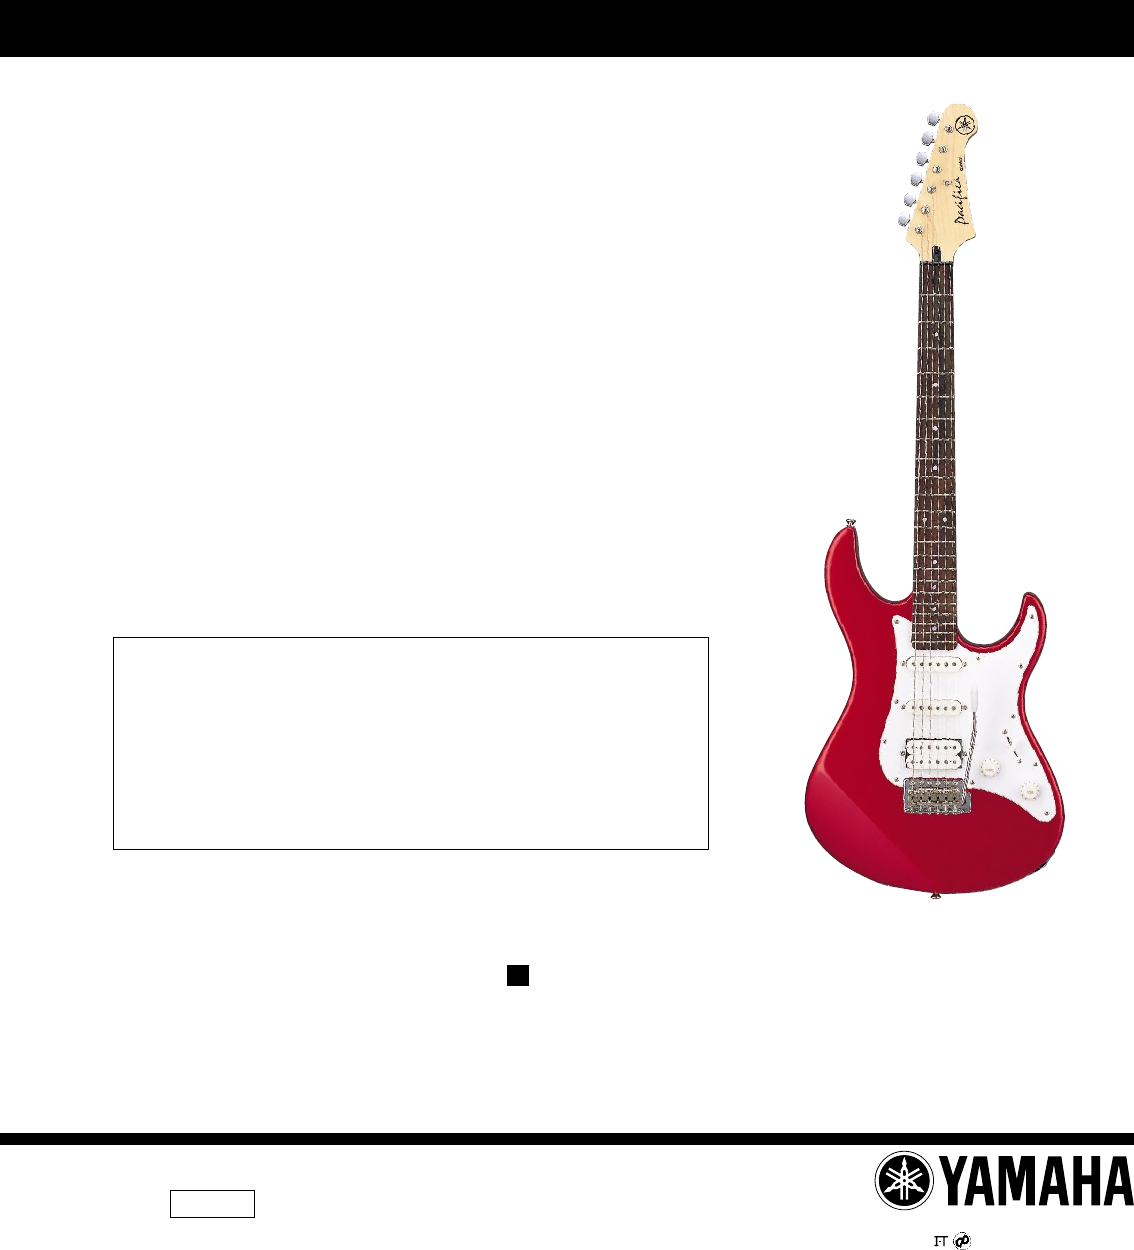 1a40e10c f1f4 49d6 bbb8 65cda3078bc4 bg1 yamaha musical instrument pacifica 012 user guide manualsonline com yamaha pacifica guitar wiring diagram at bayanpartner.co